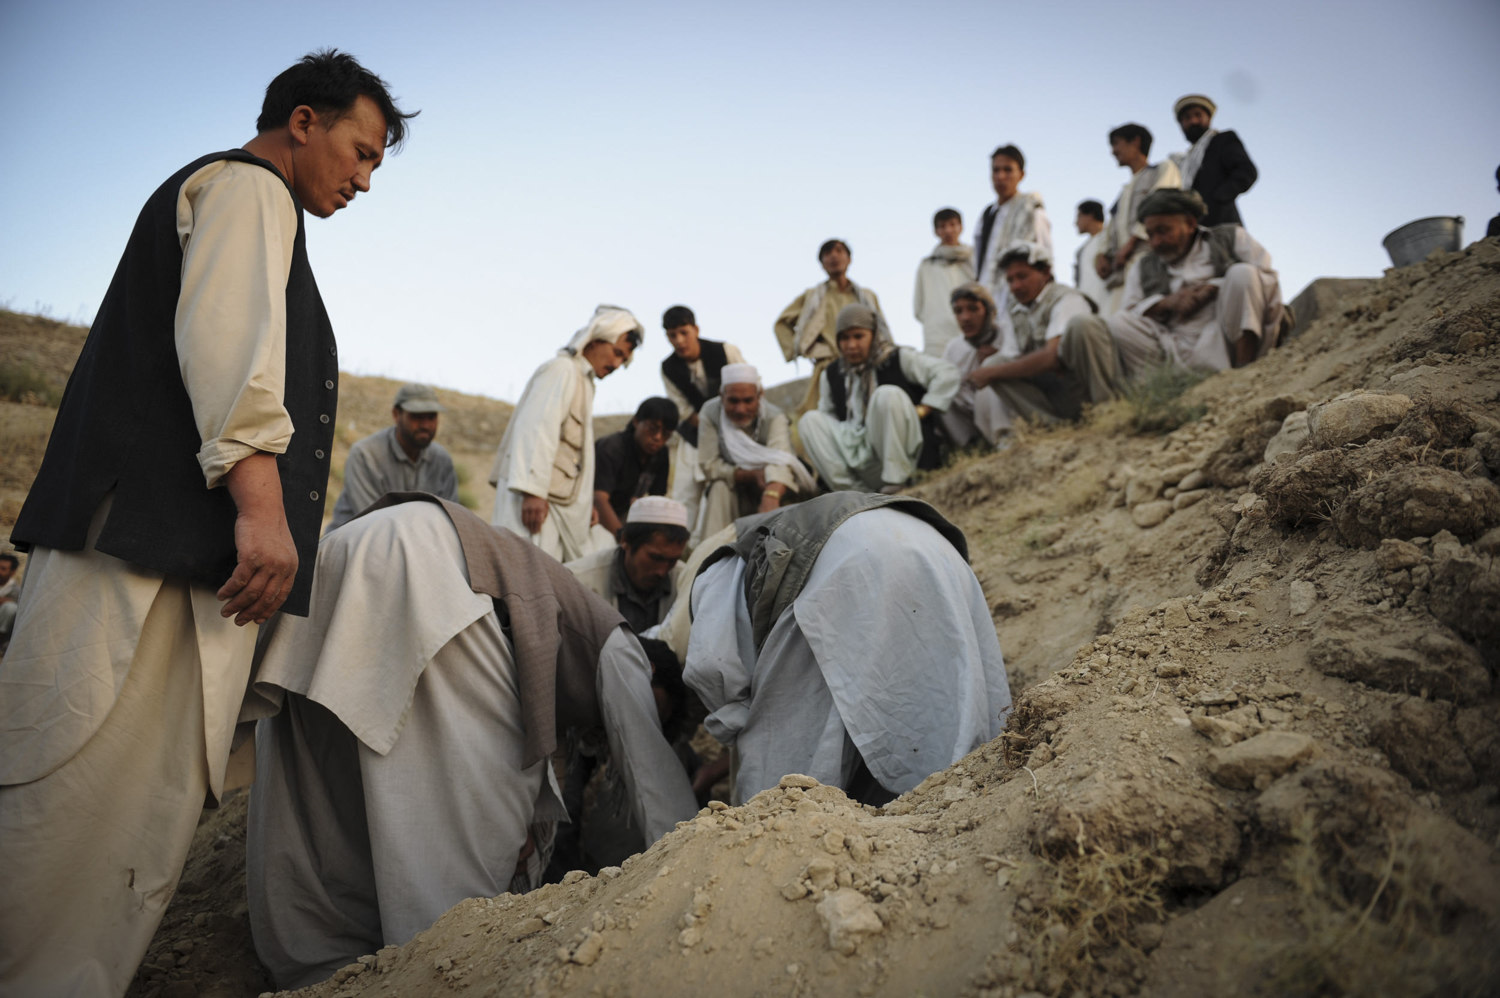 A Hazara funeral in Kabul, Afghanistan. In Afghanistan and most Muslim countries it is required to bury the dead before sunset. Only men attend the burial and women mourn at home.  The man on the left is the deceased son.